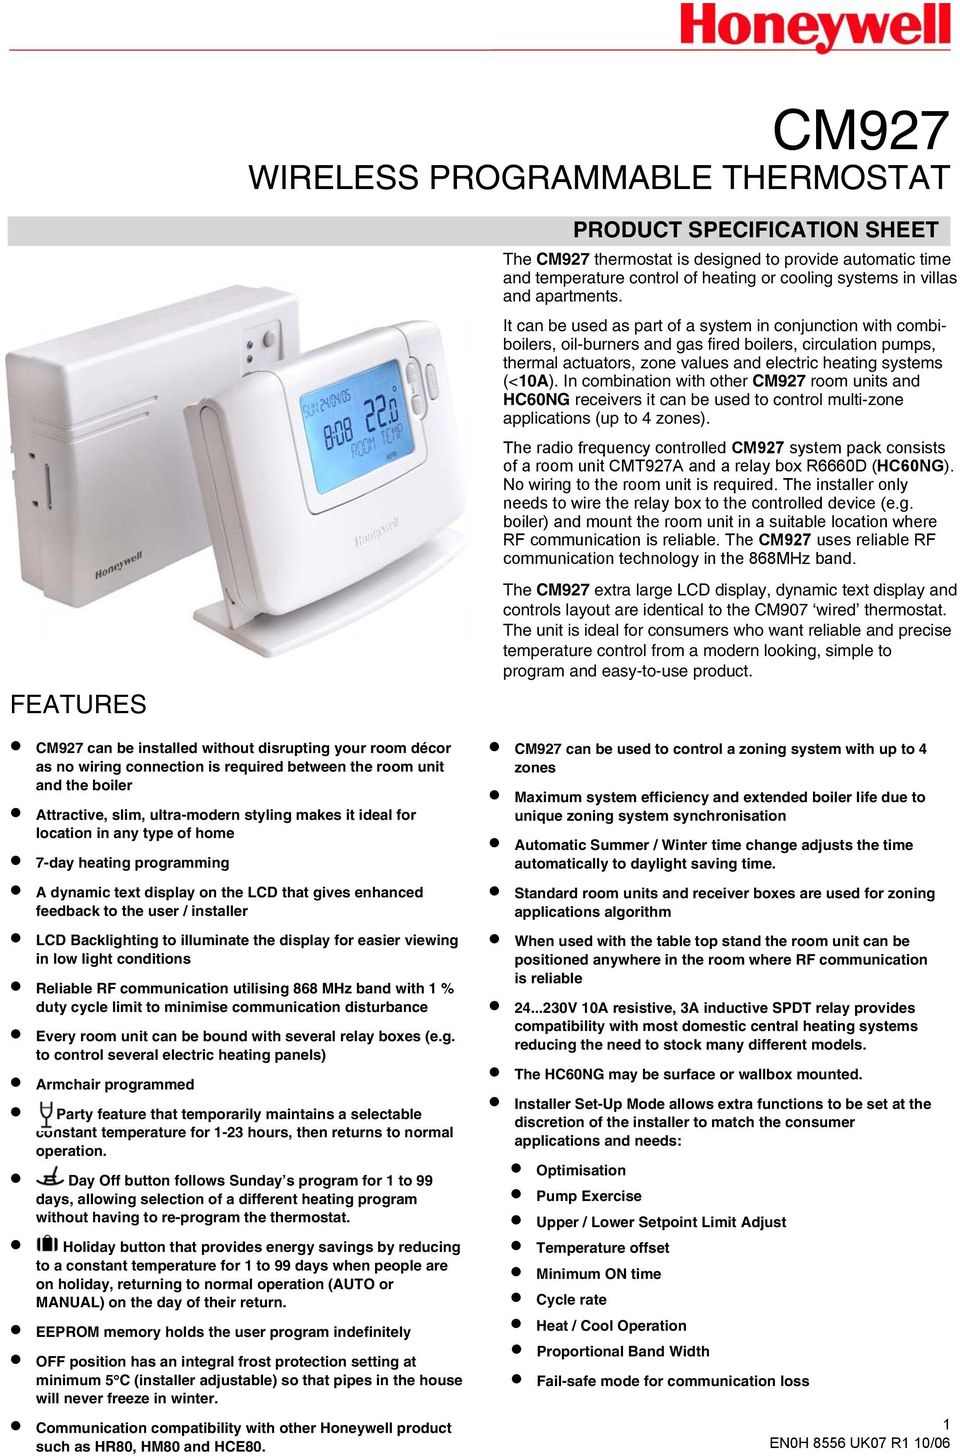 Cm927 Wireless Programmable Thermostat Features Product Wiring A Rf To Illuminate The Display For Easier Viewing In Low Light Conditions Reliable Communication Utilising 868